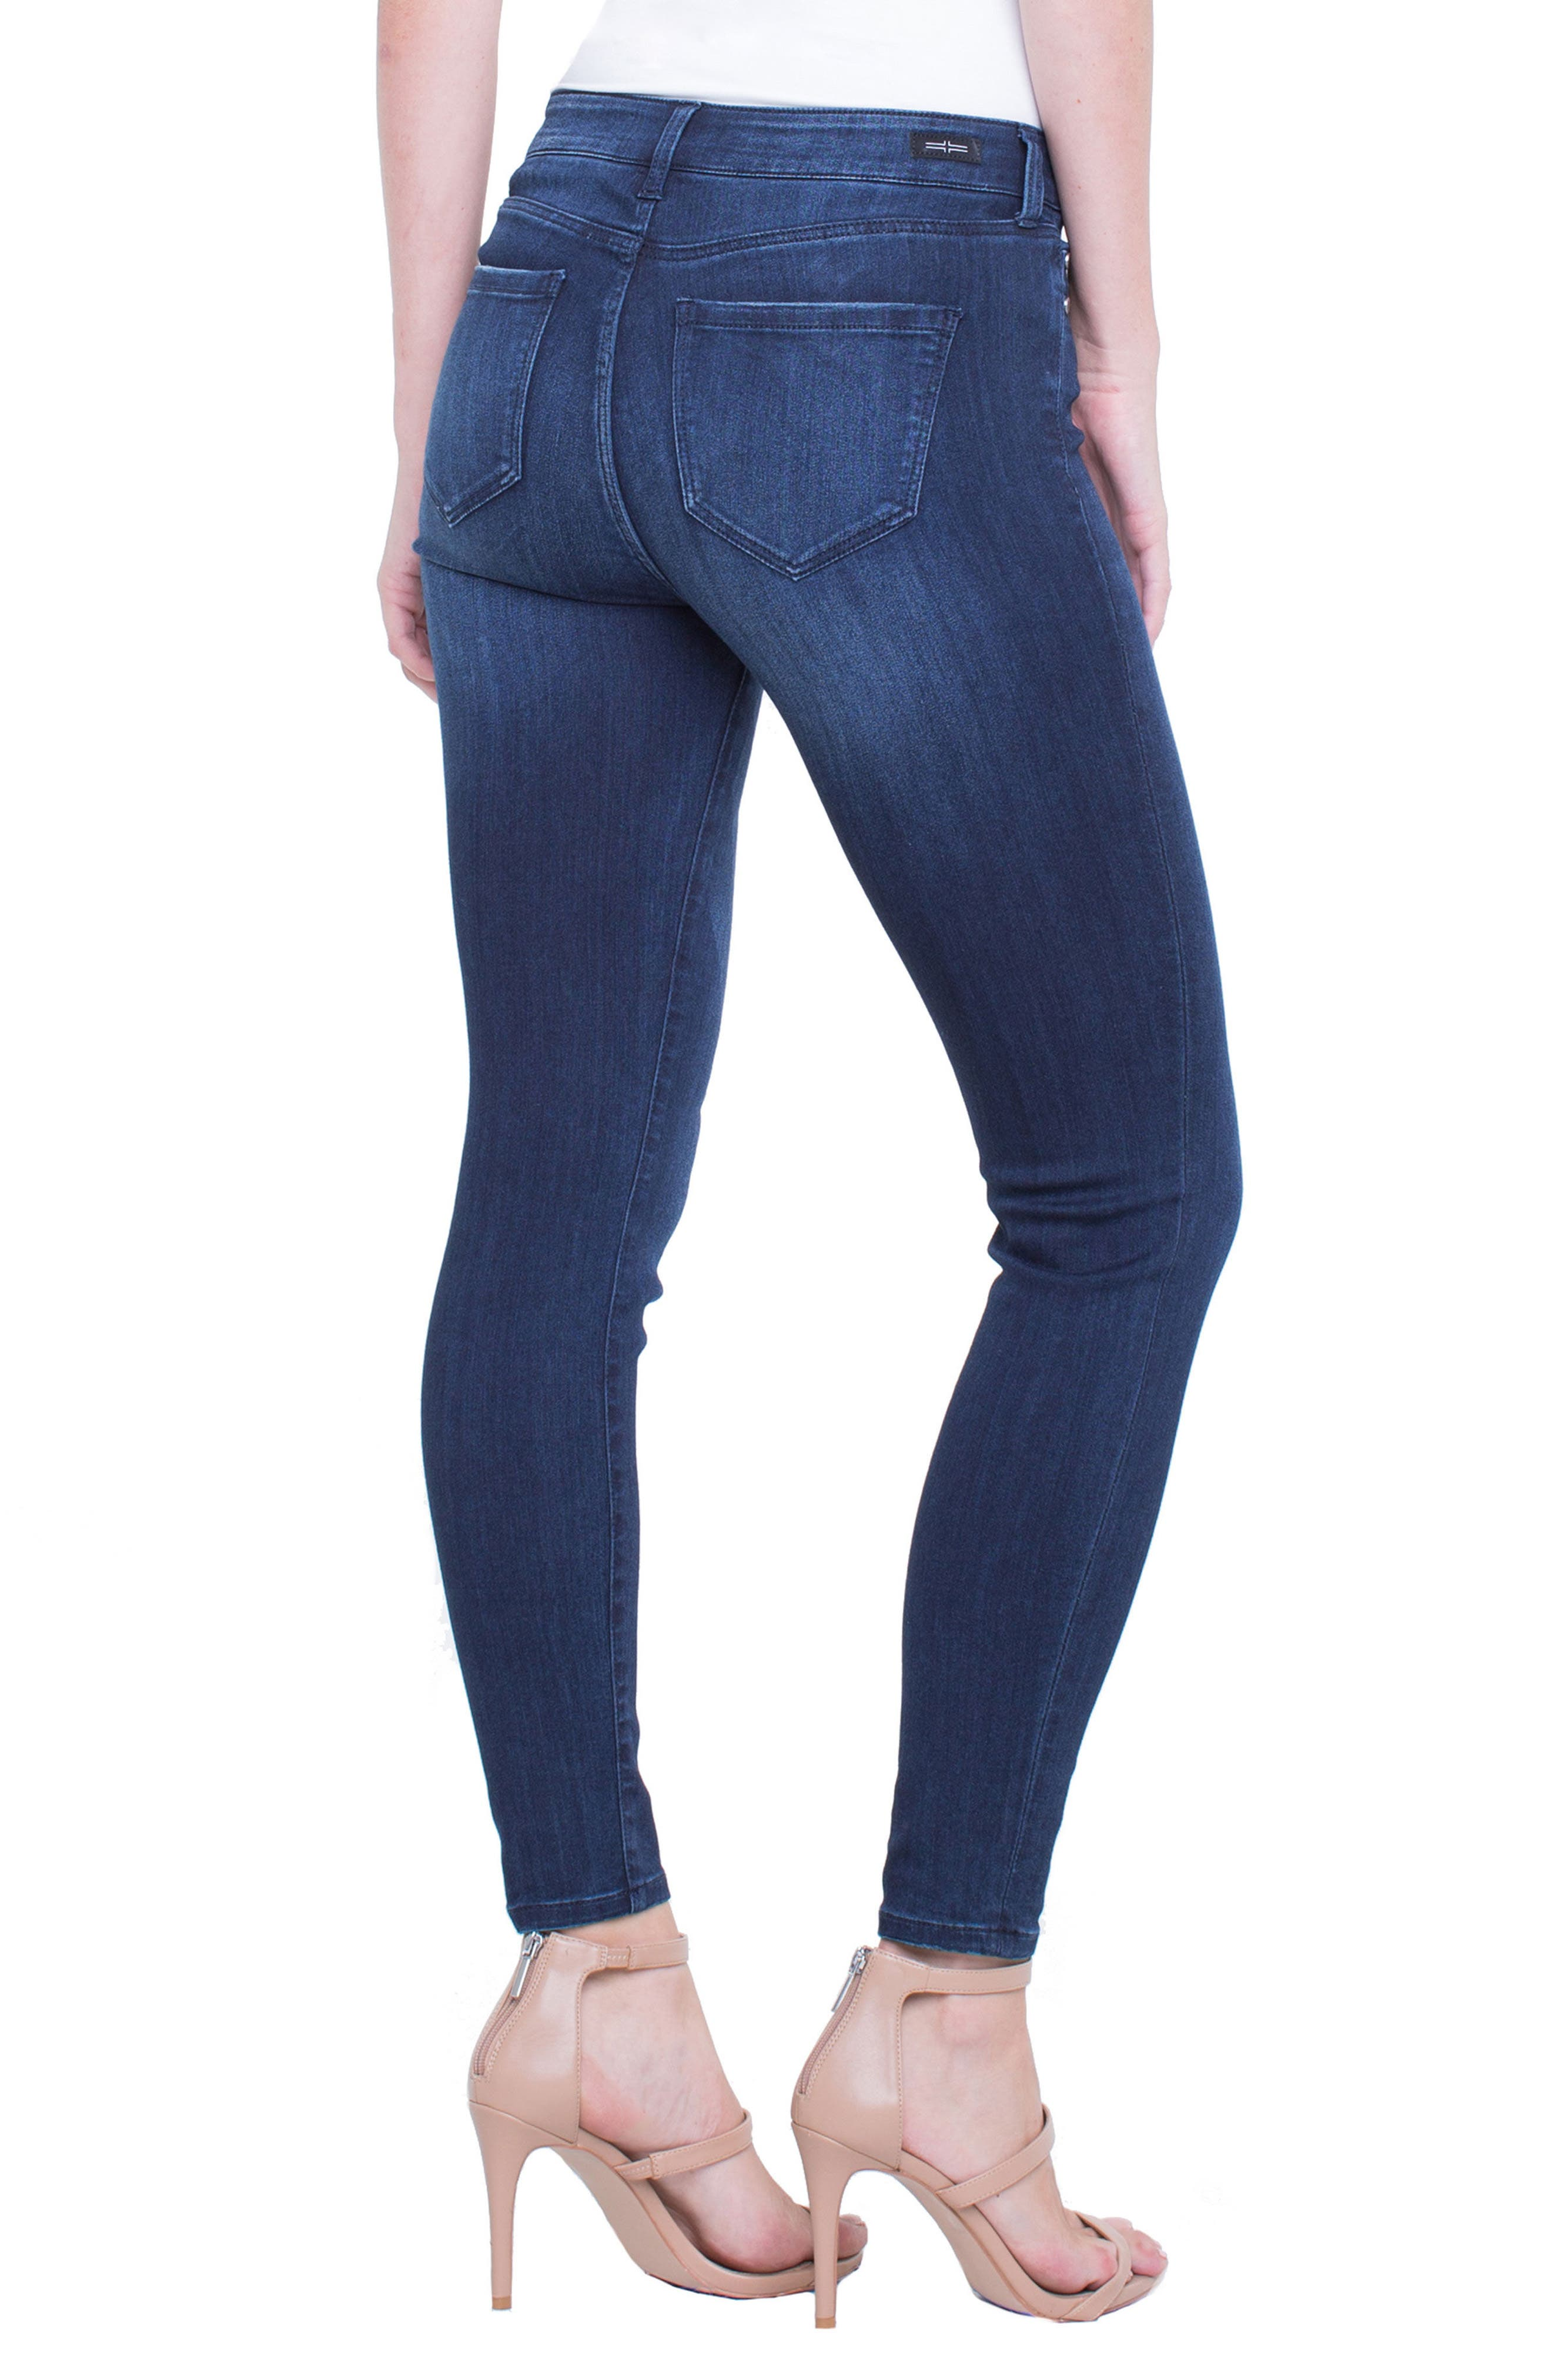 Jeans Company Penny Ankle Skinny Jeans,                             Alternate thumbnail 2, color,                             WESTPORT WASH